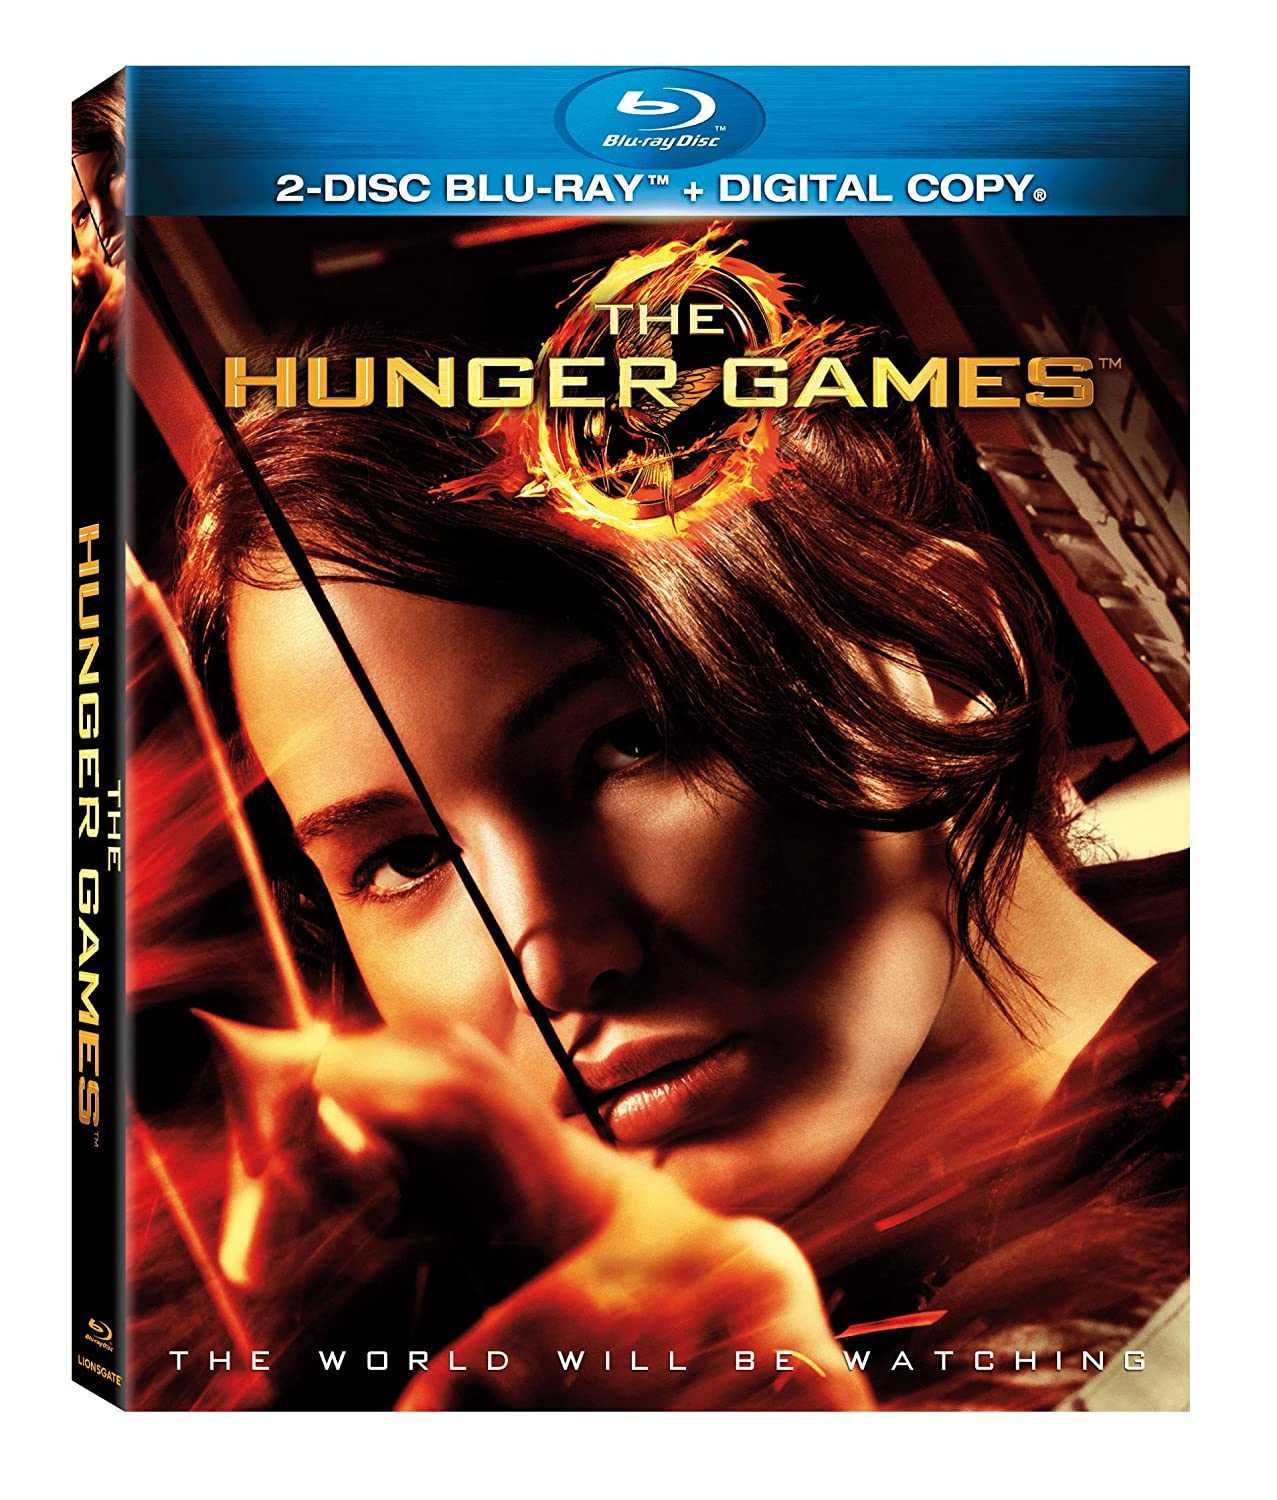 The Hunger Games Blu-ray DVD